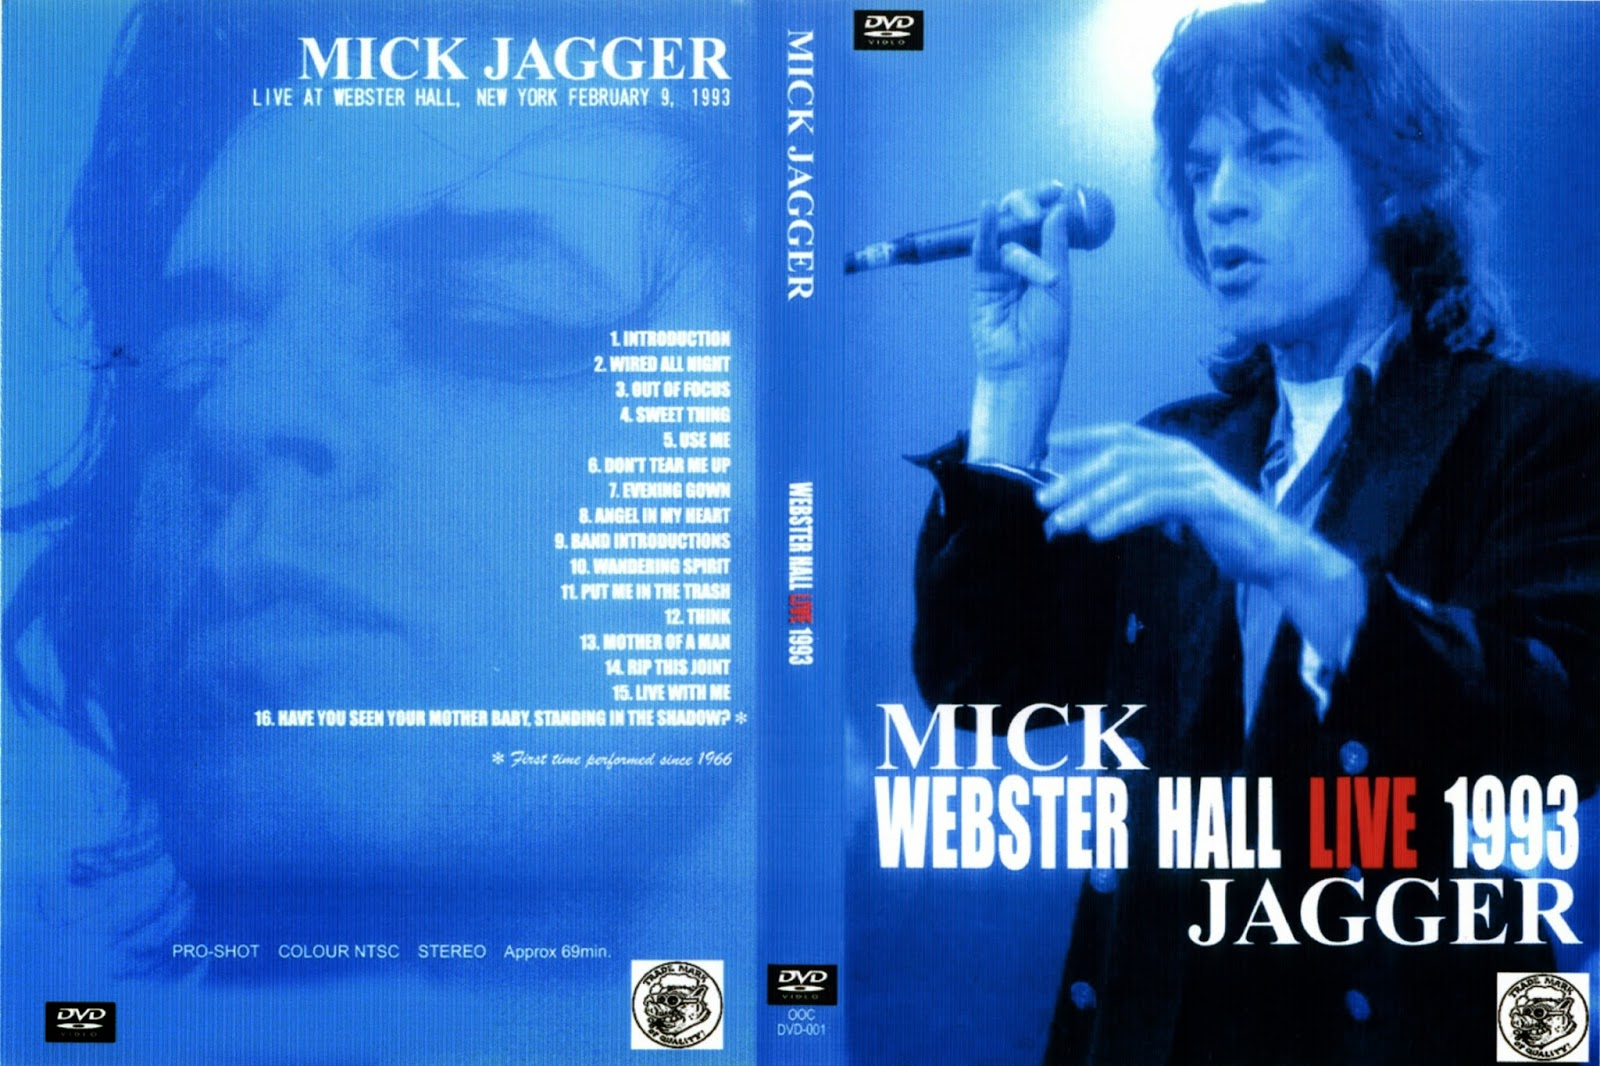 T.U.B.E.: Mick Jagger - 1993-02-09 - New York City, NY (DVDfull pro ...